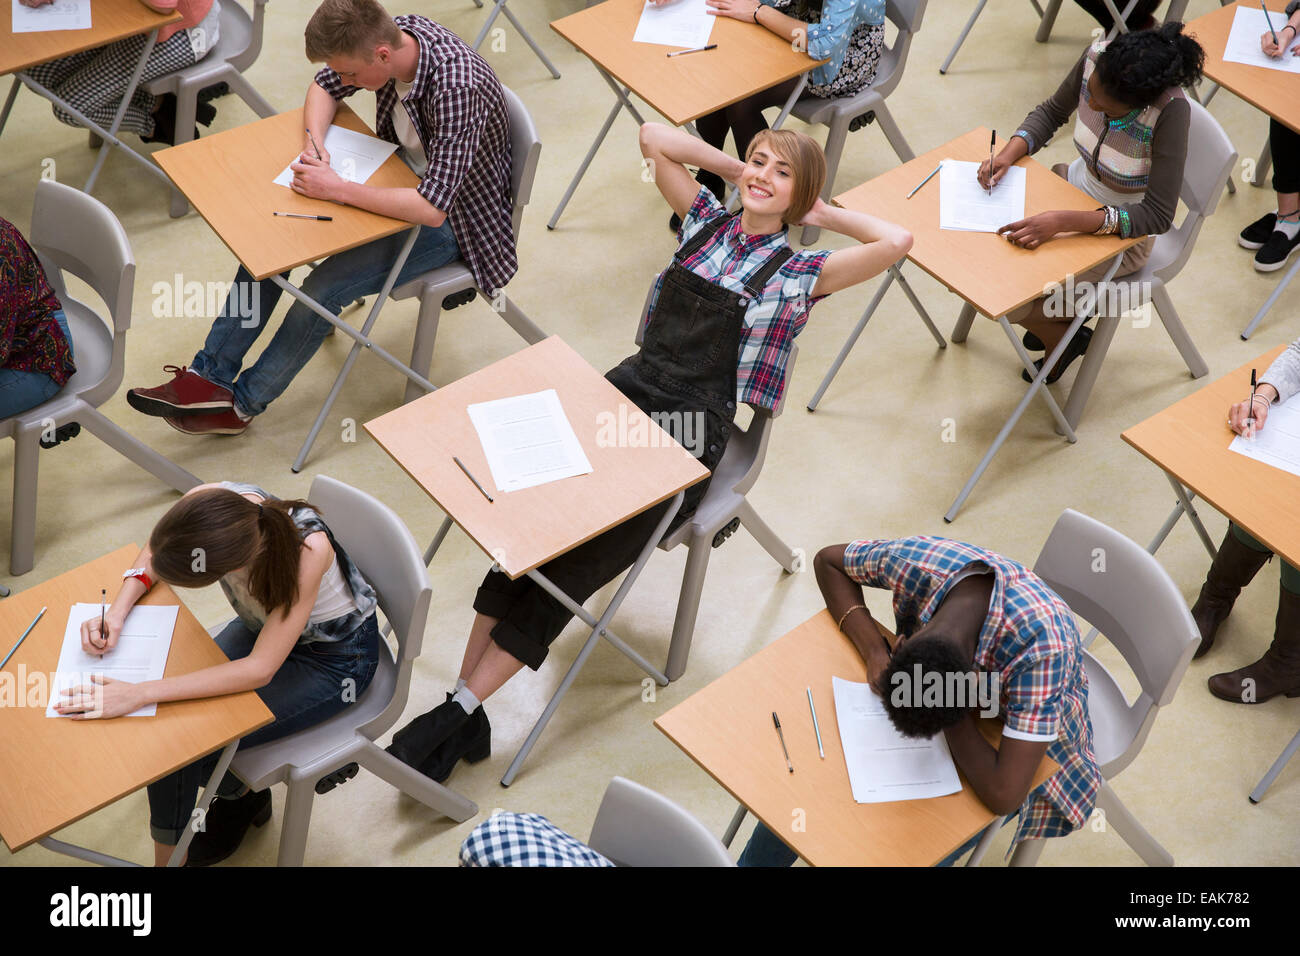 Students writing their GCSE exam in classroom Stock Photo